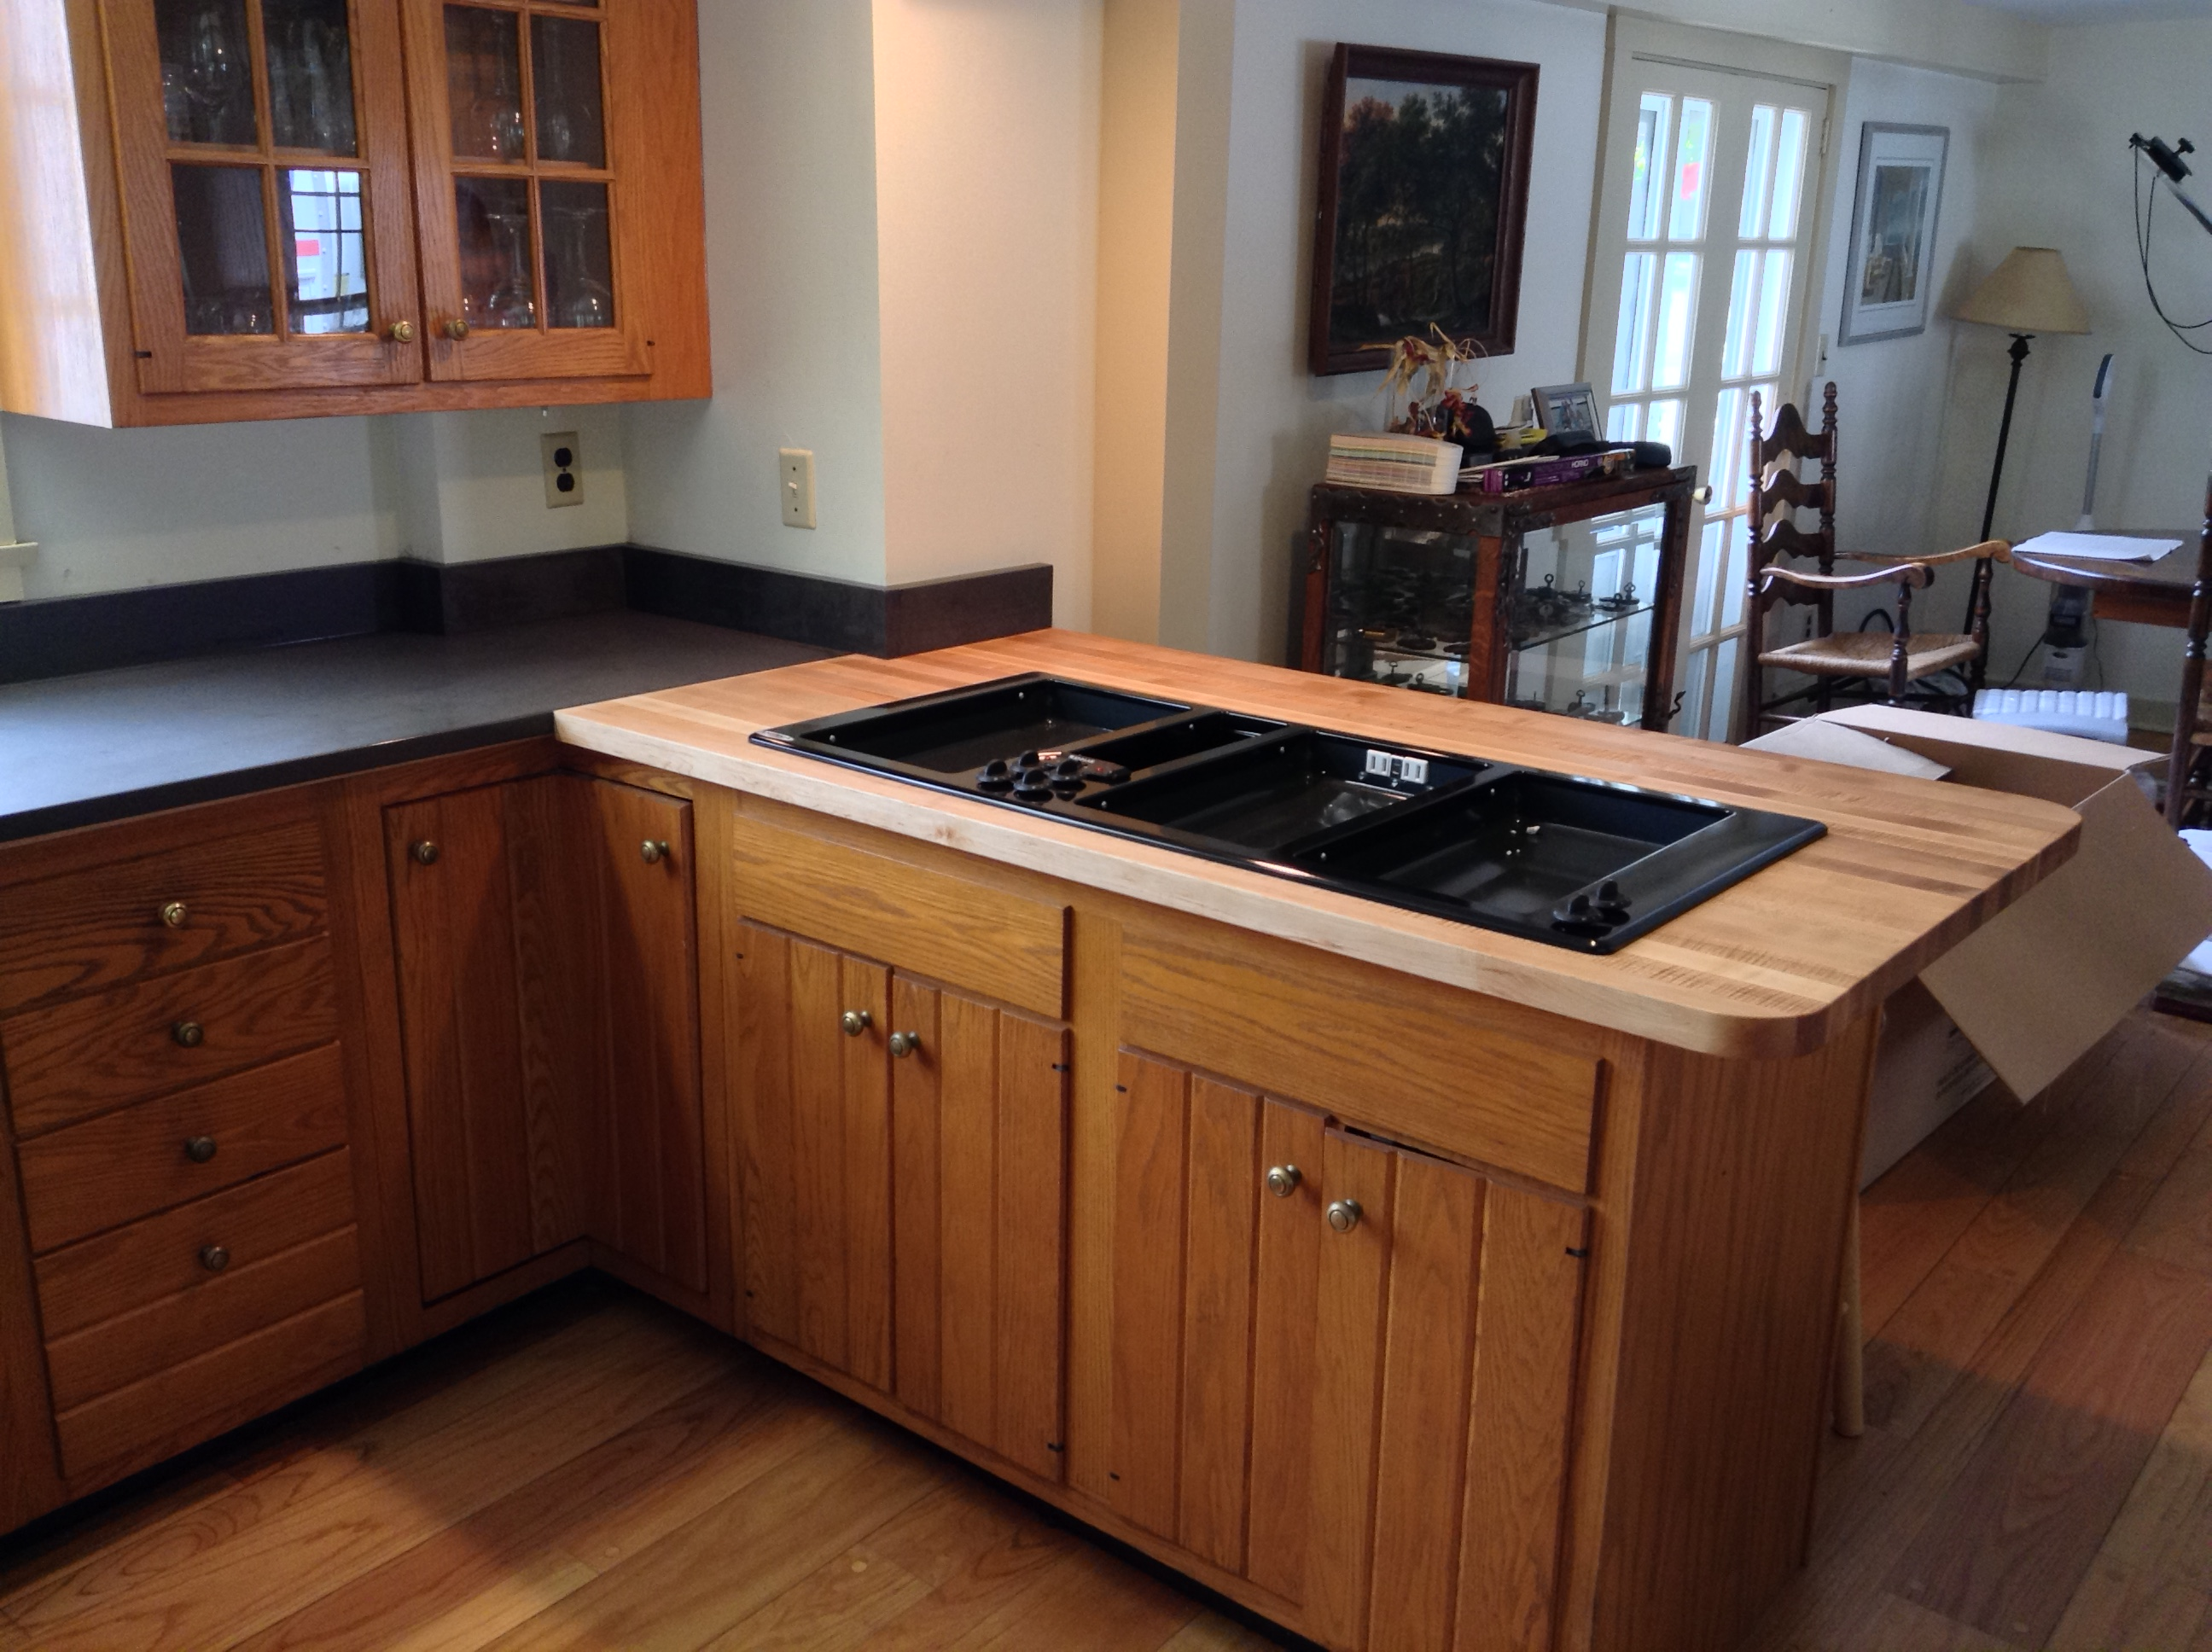 island look floor cabinet black interior for white grey awesome with wood offers on countertops countertop granite kitchen your looks wooden decoration brown over and contemporary